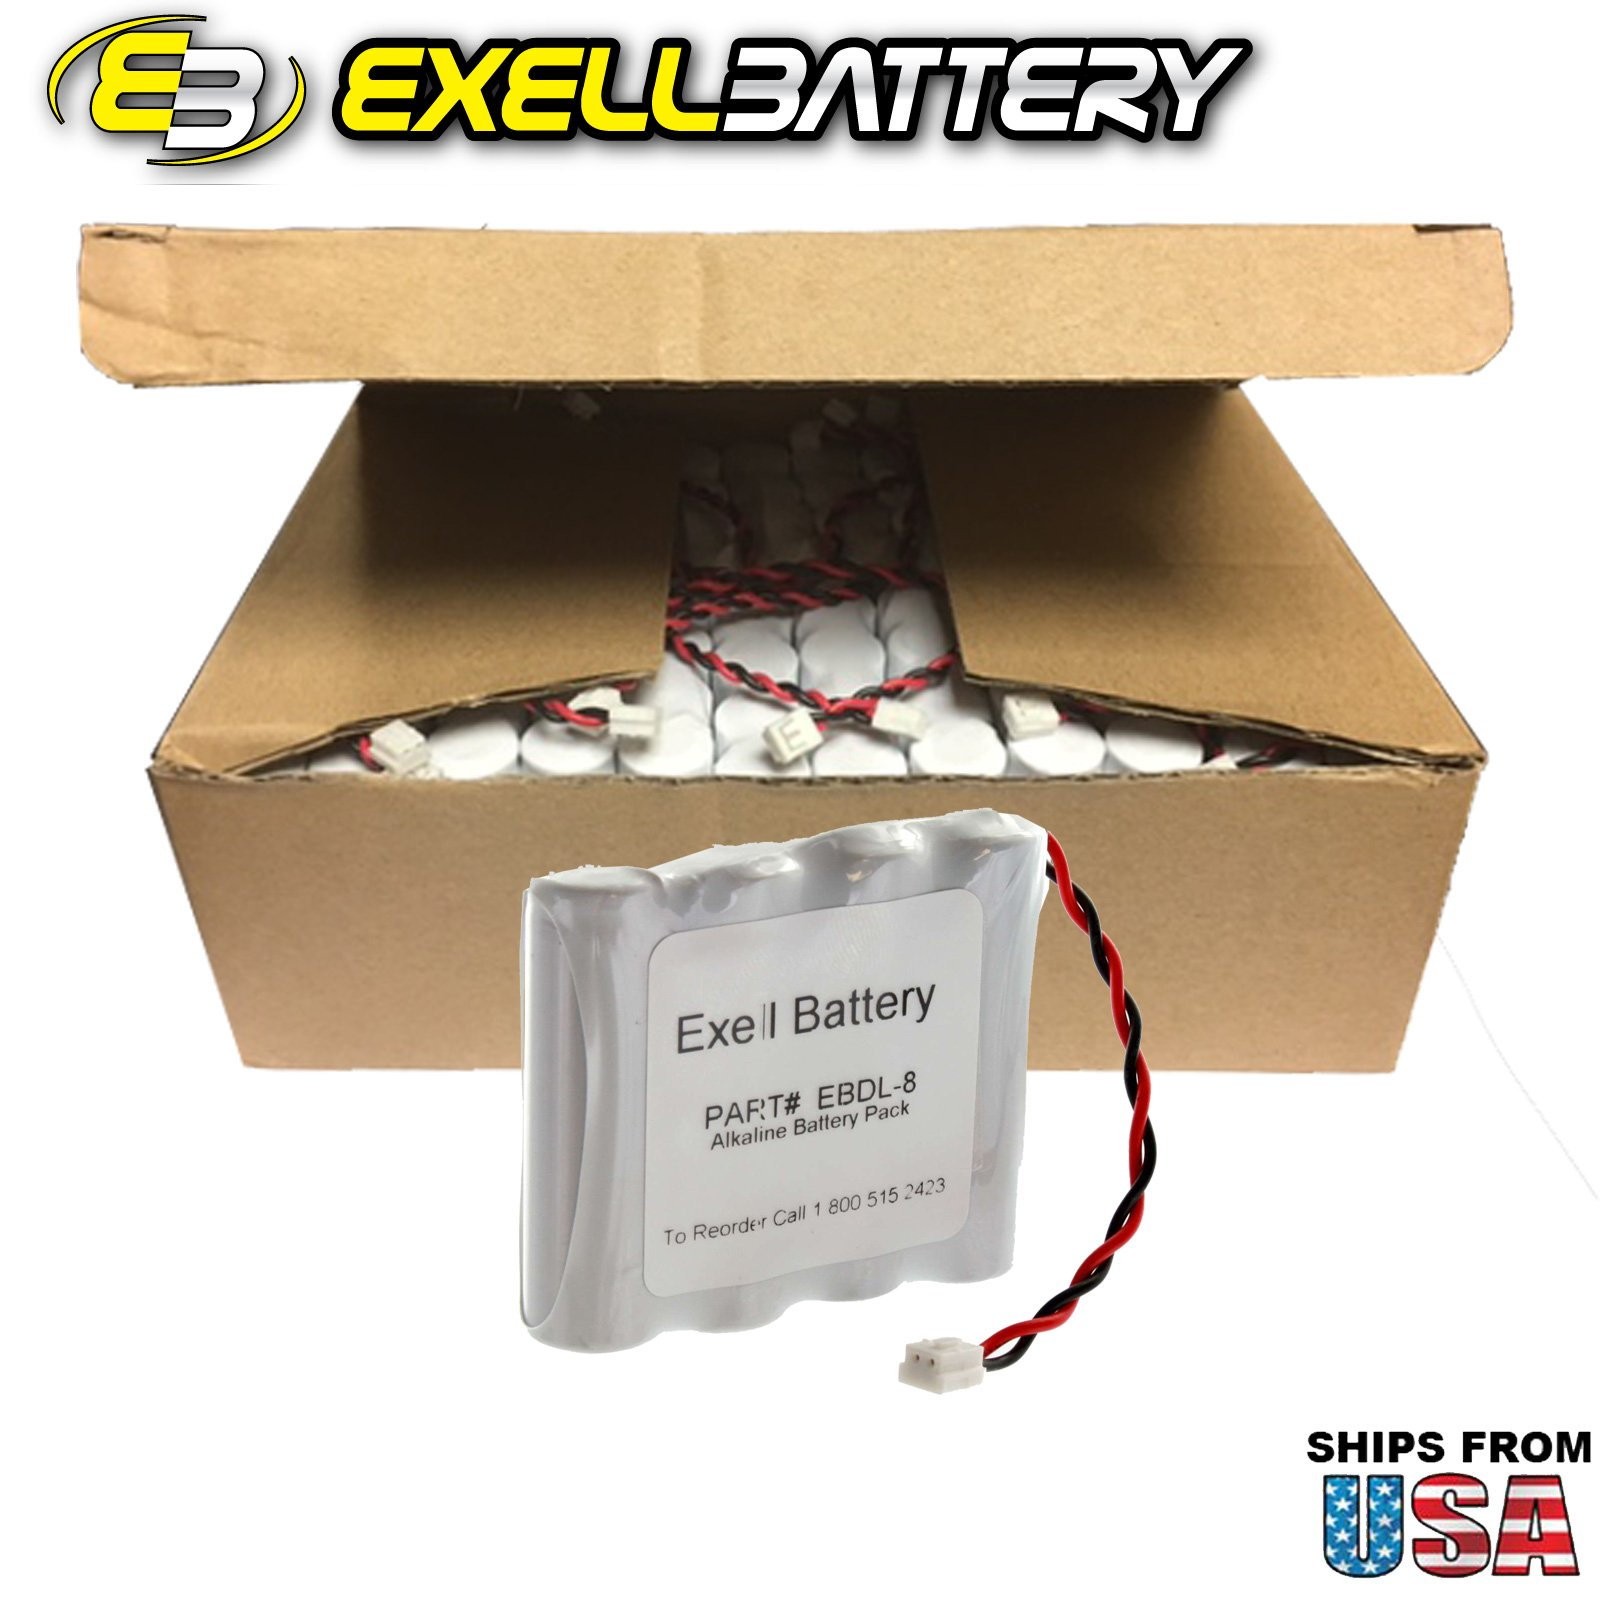 48x Exell Battery Door Lock 6V 4-Cell Battery Pack Fits 884952, A28110, A28100, DL-12 / 4, HTL-11/13, Intellis, MT, CSS5200 FAST USA SHIP by Exell Battery